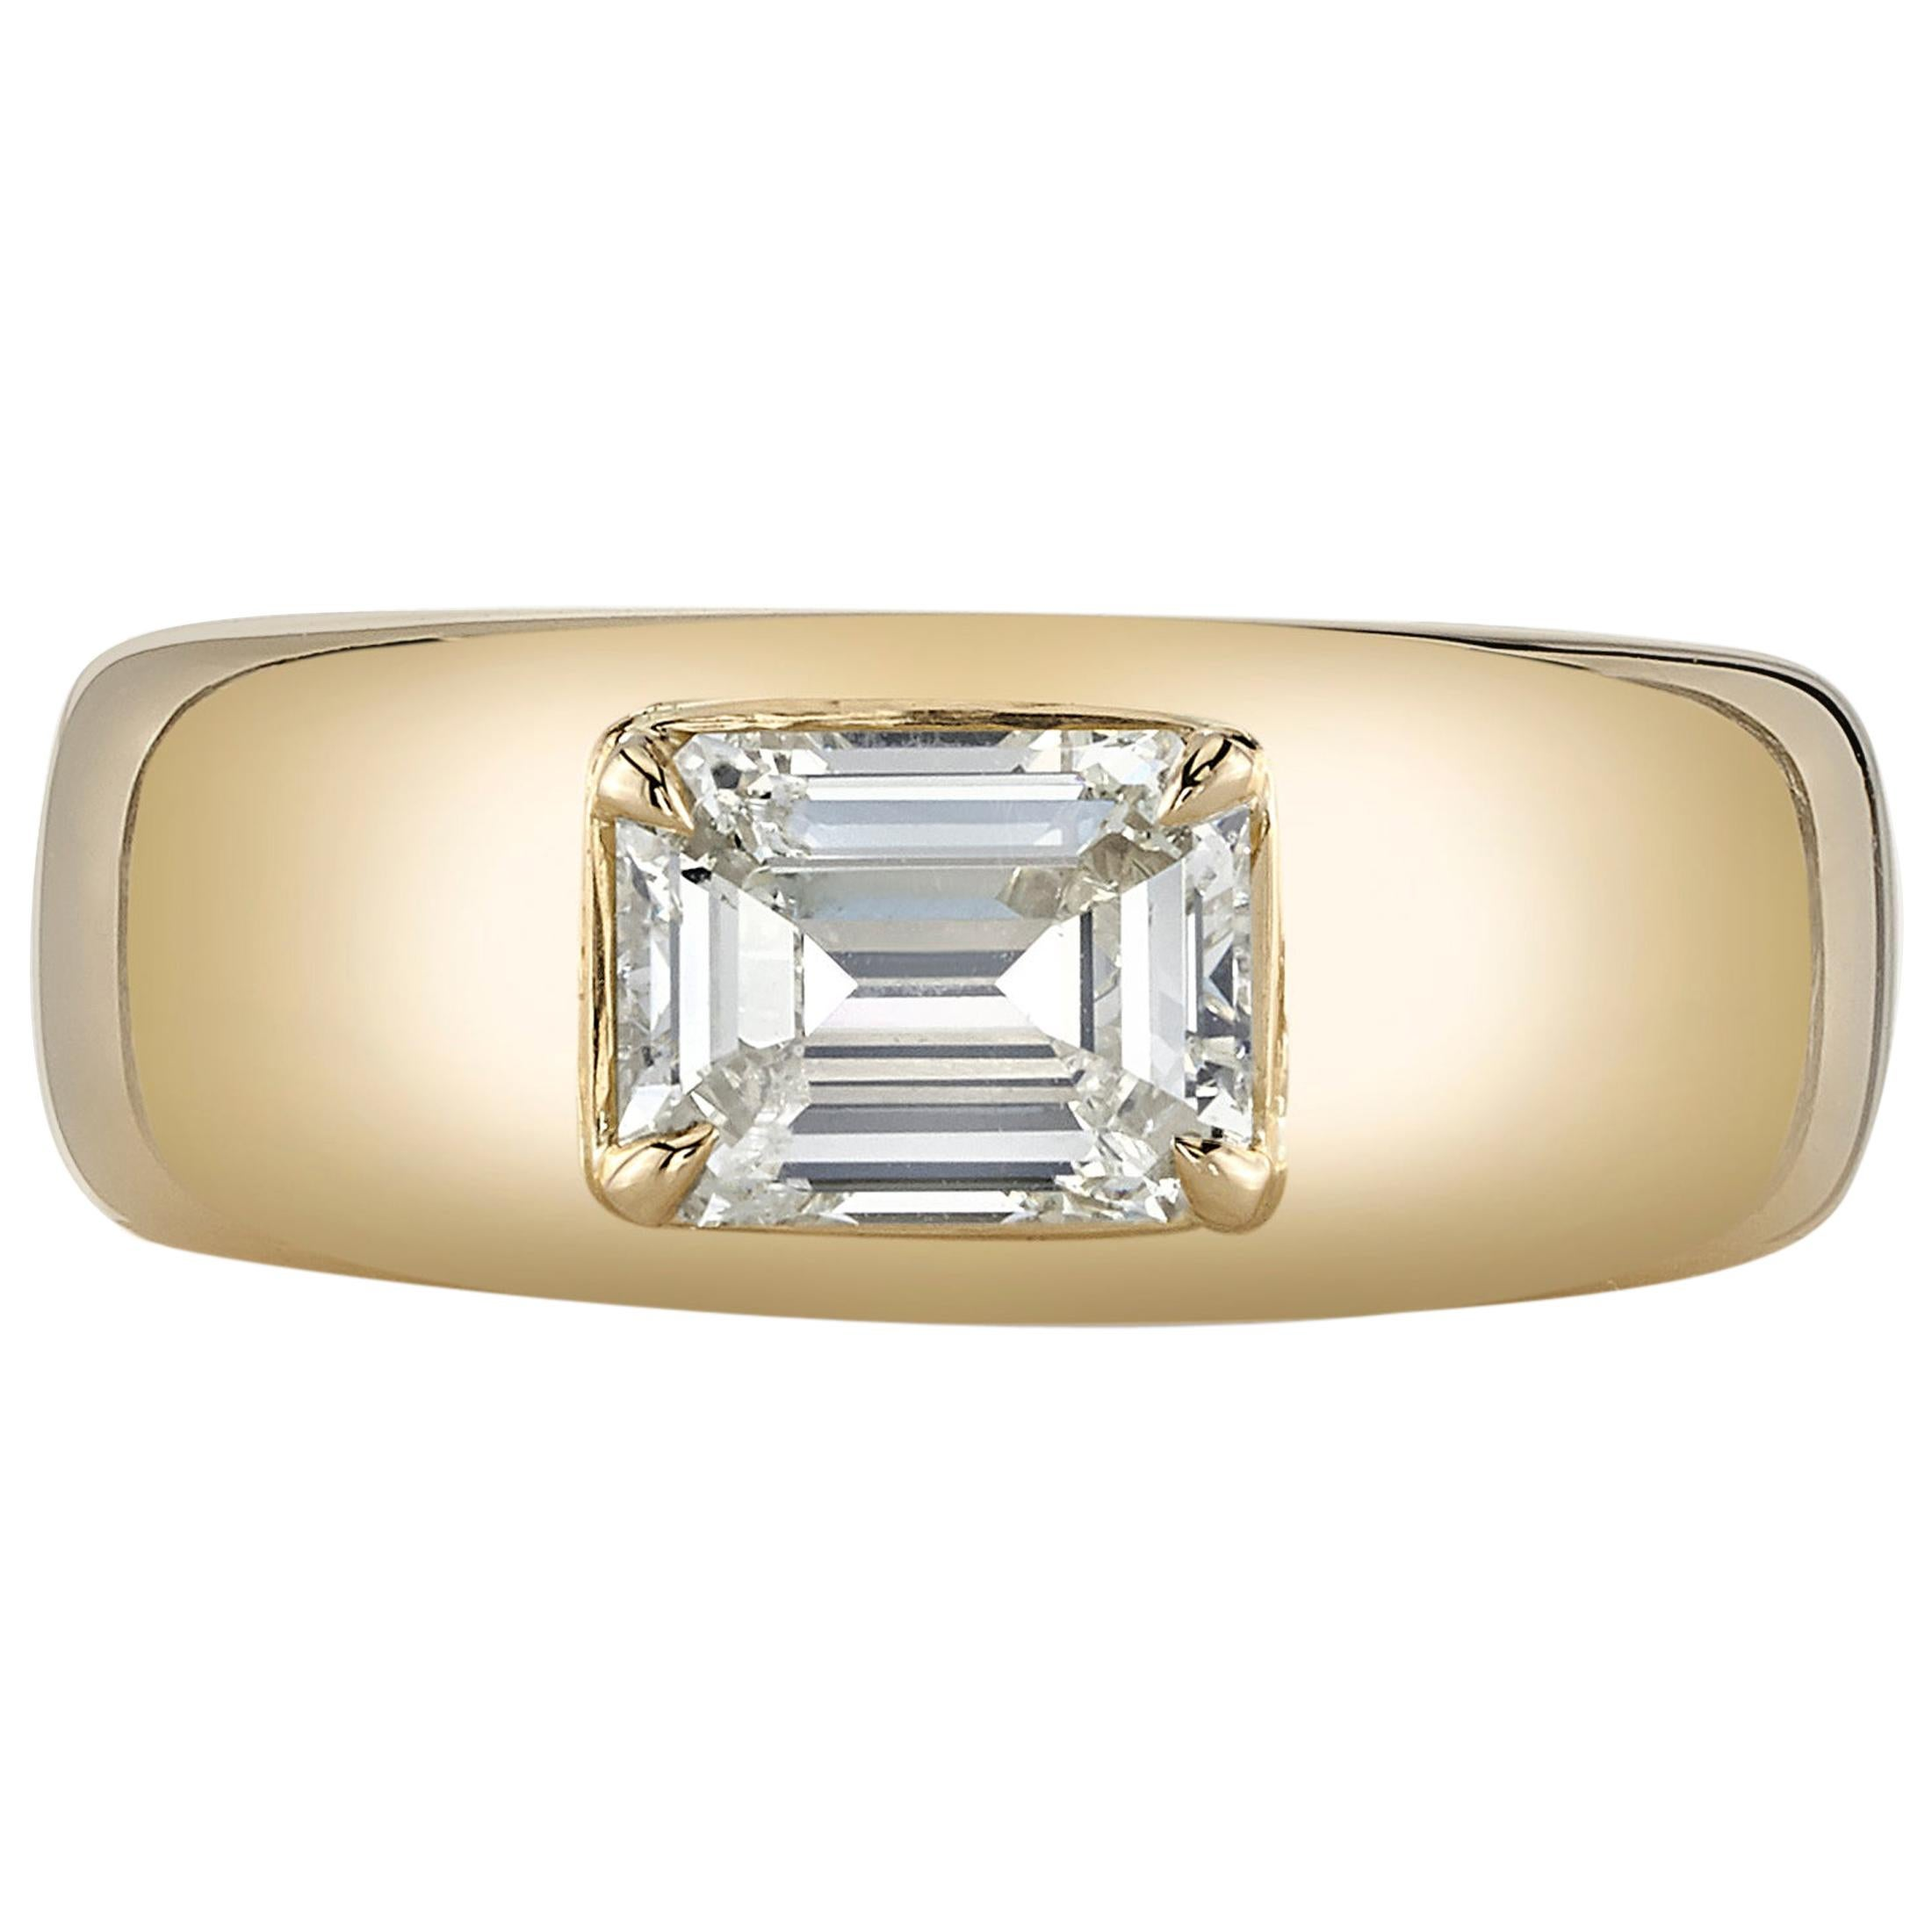 Handcrafted Remington Emerald Cut Diamond Ring by Single Stone